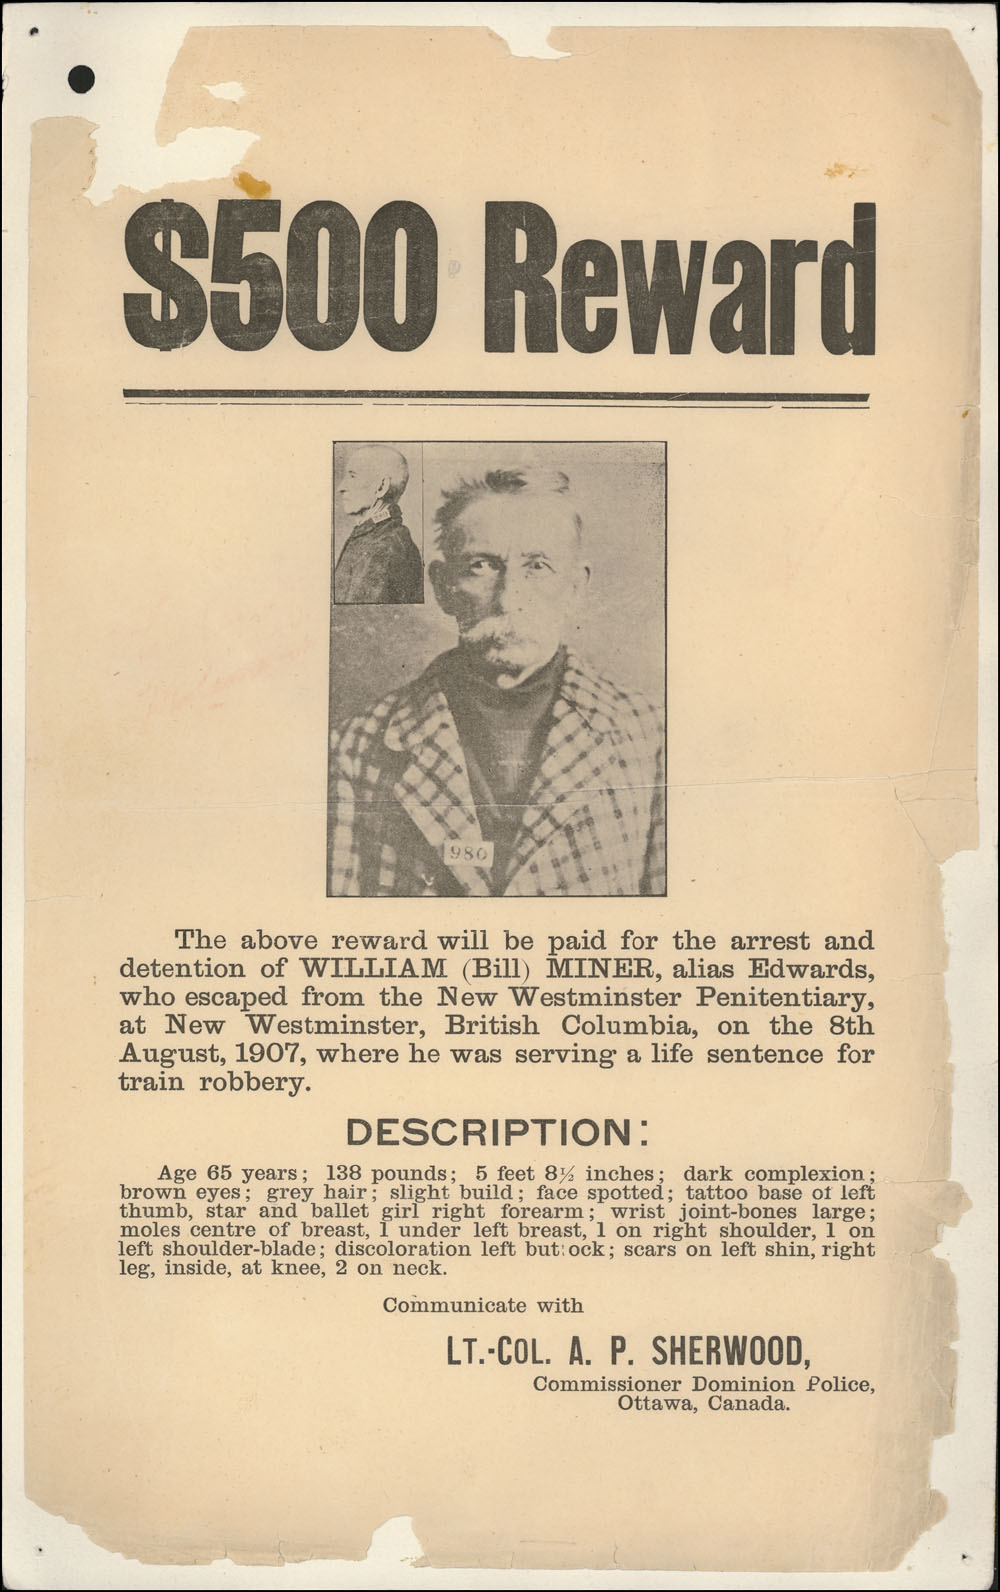 Reward Notice for Bill Miner